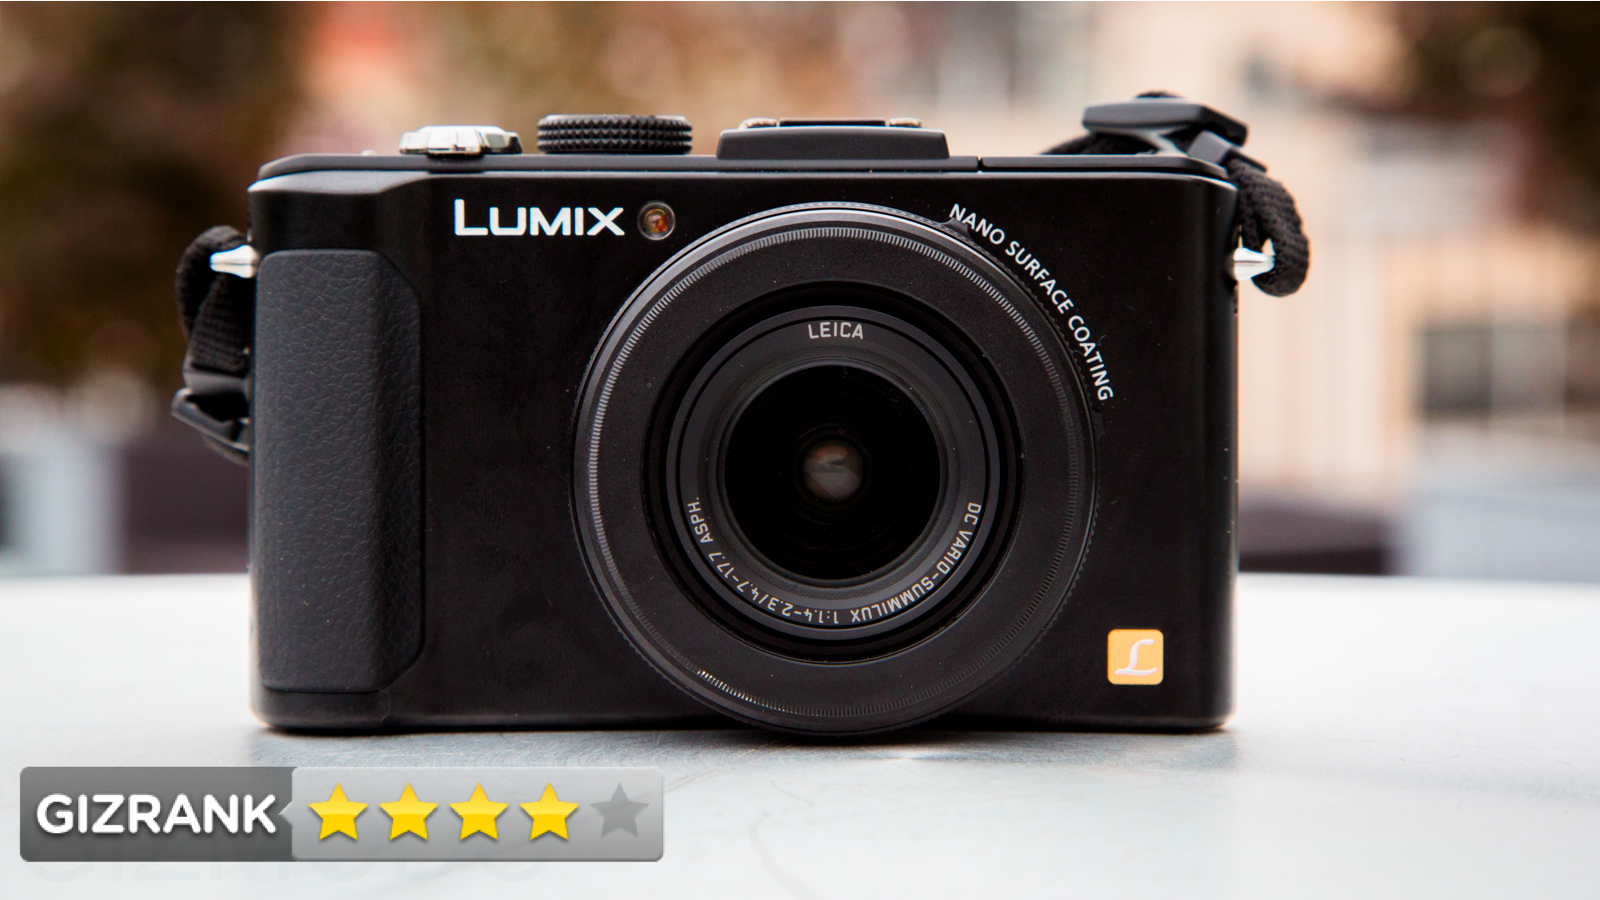 Panasonic Lumix DMC-LX7 Review: Lovely Point-And-Shoot For Control Freaks